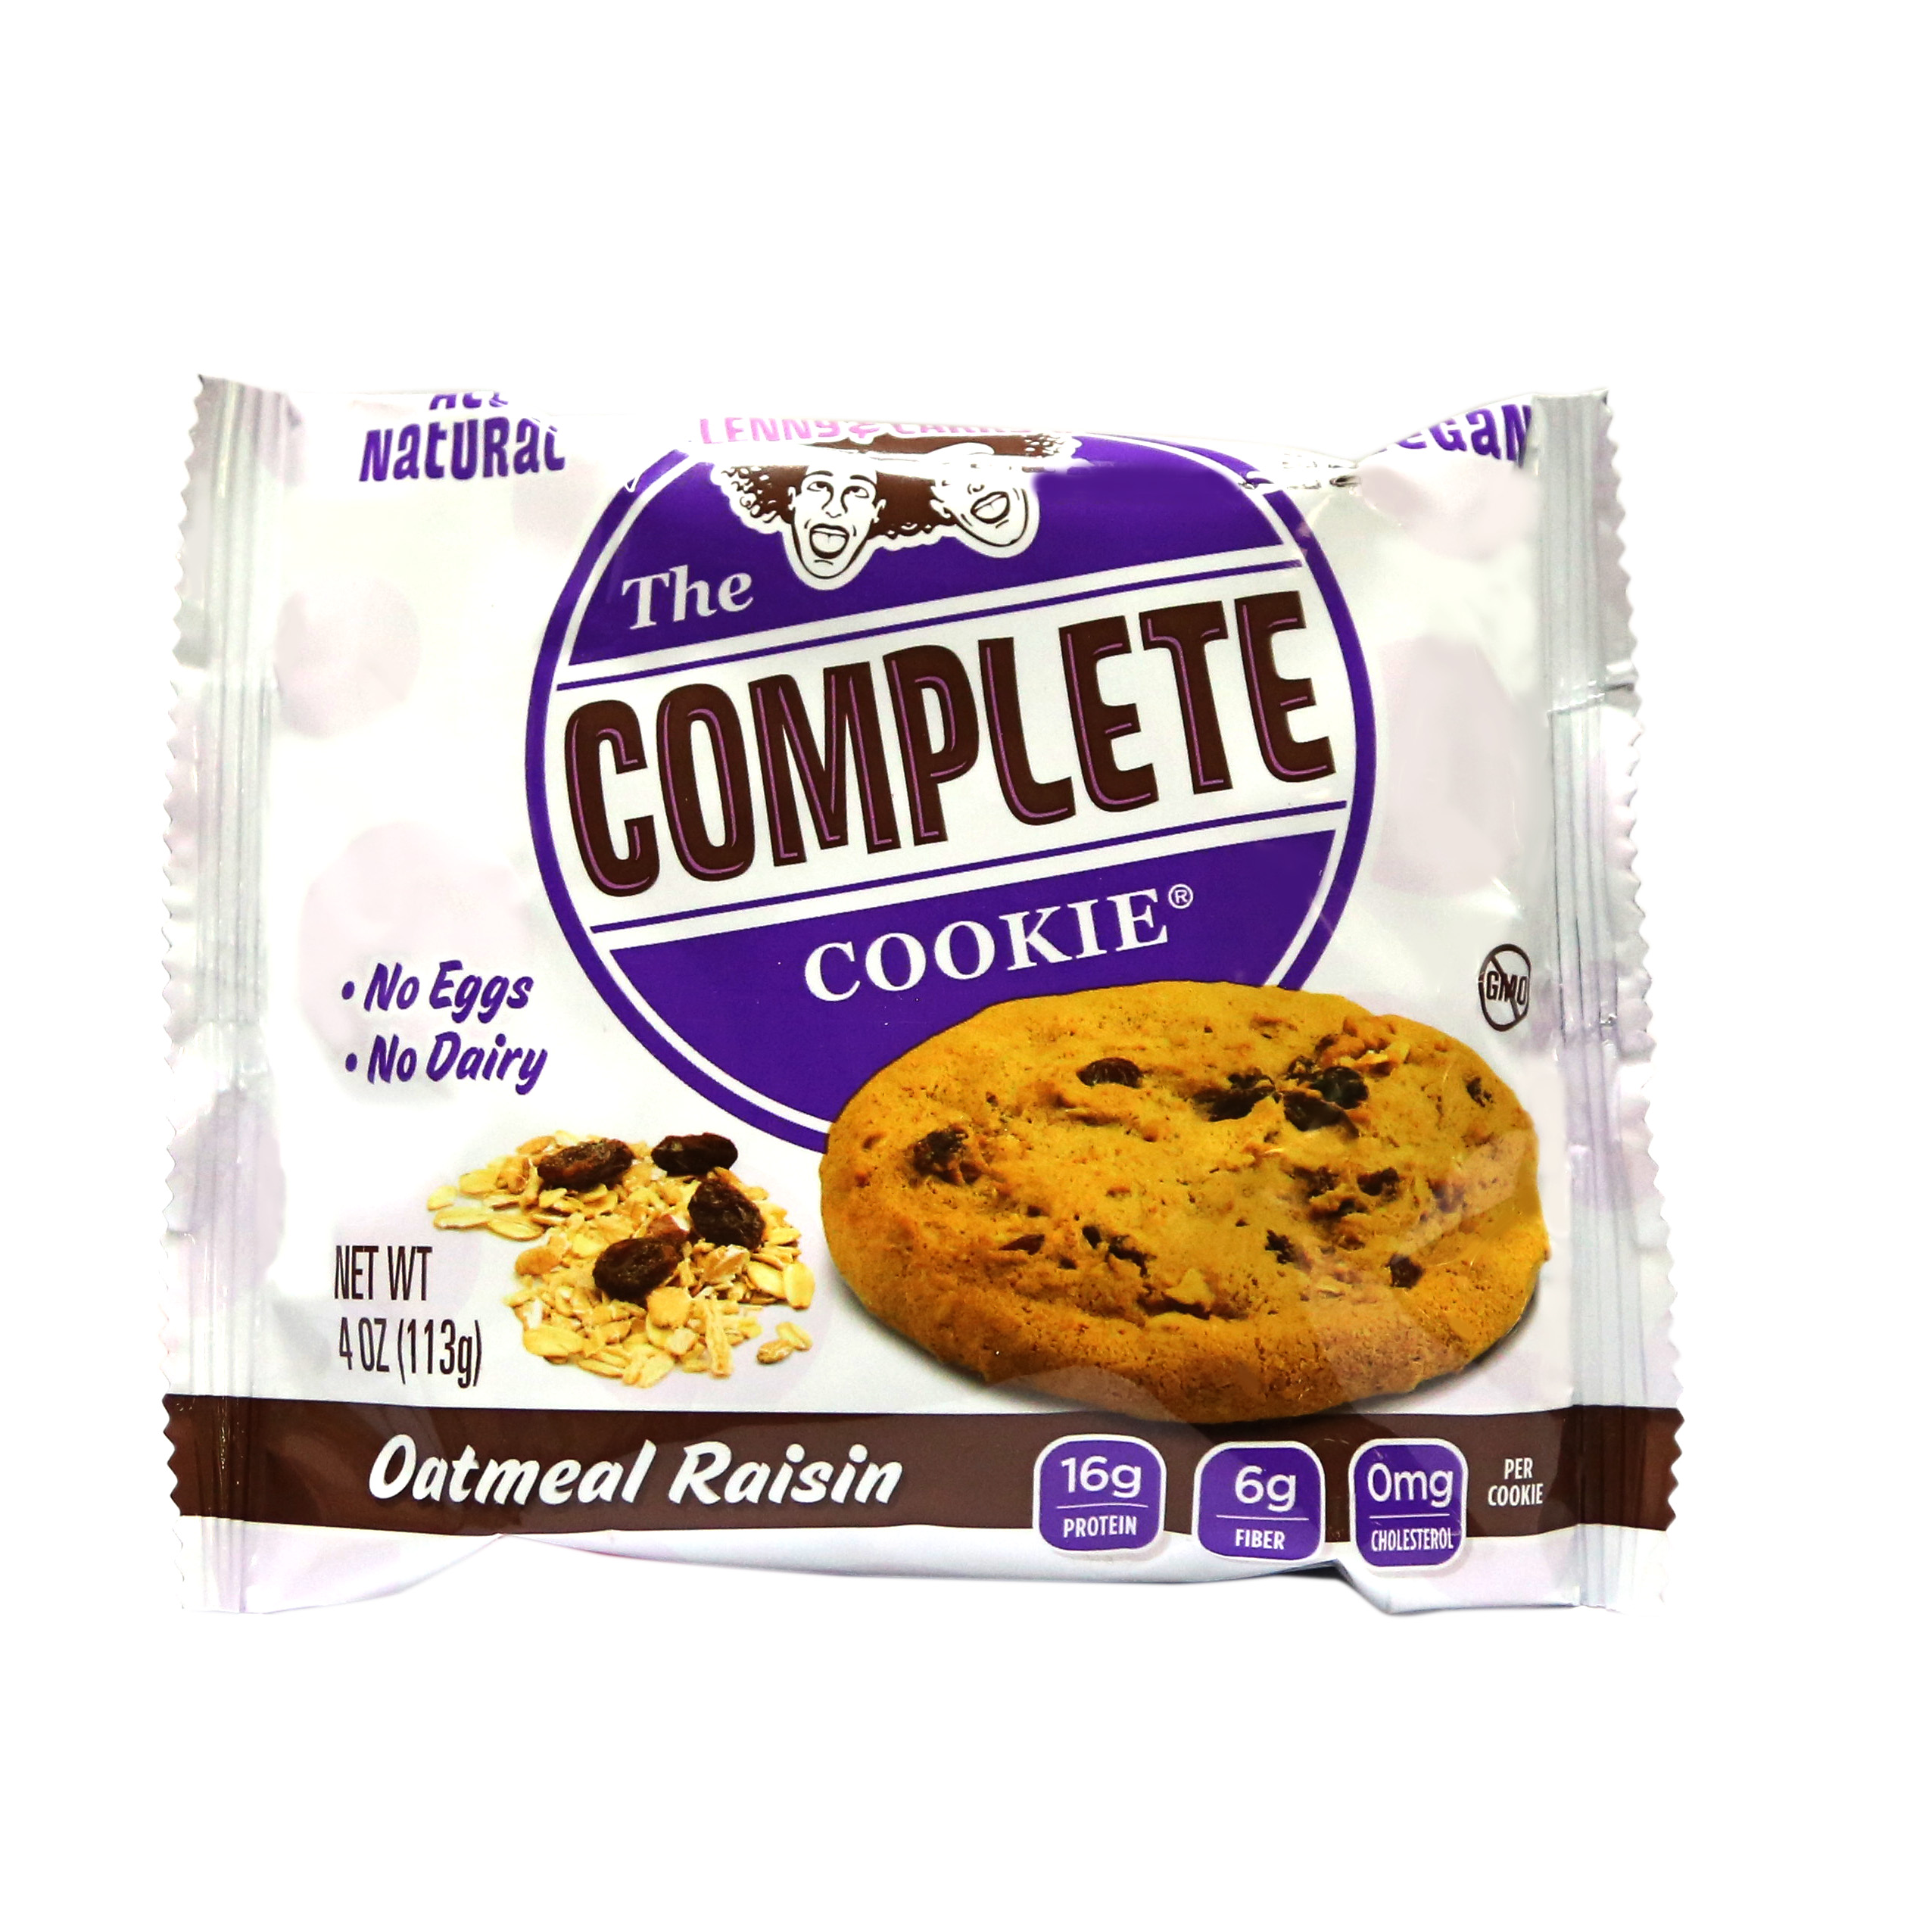 oatmeal-raisin-cookie1.jpg